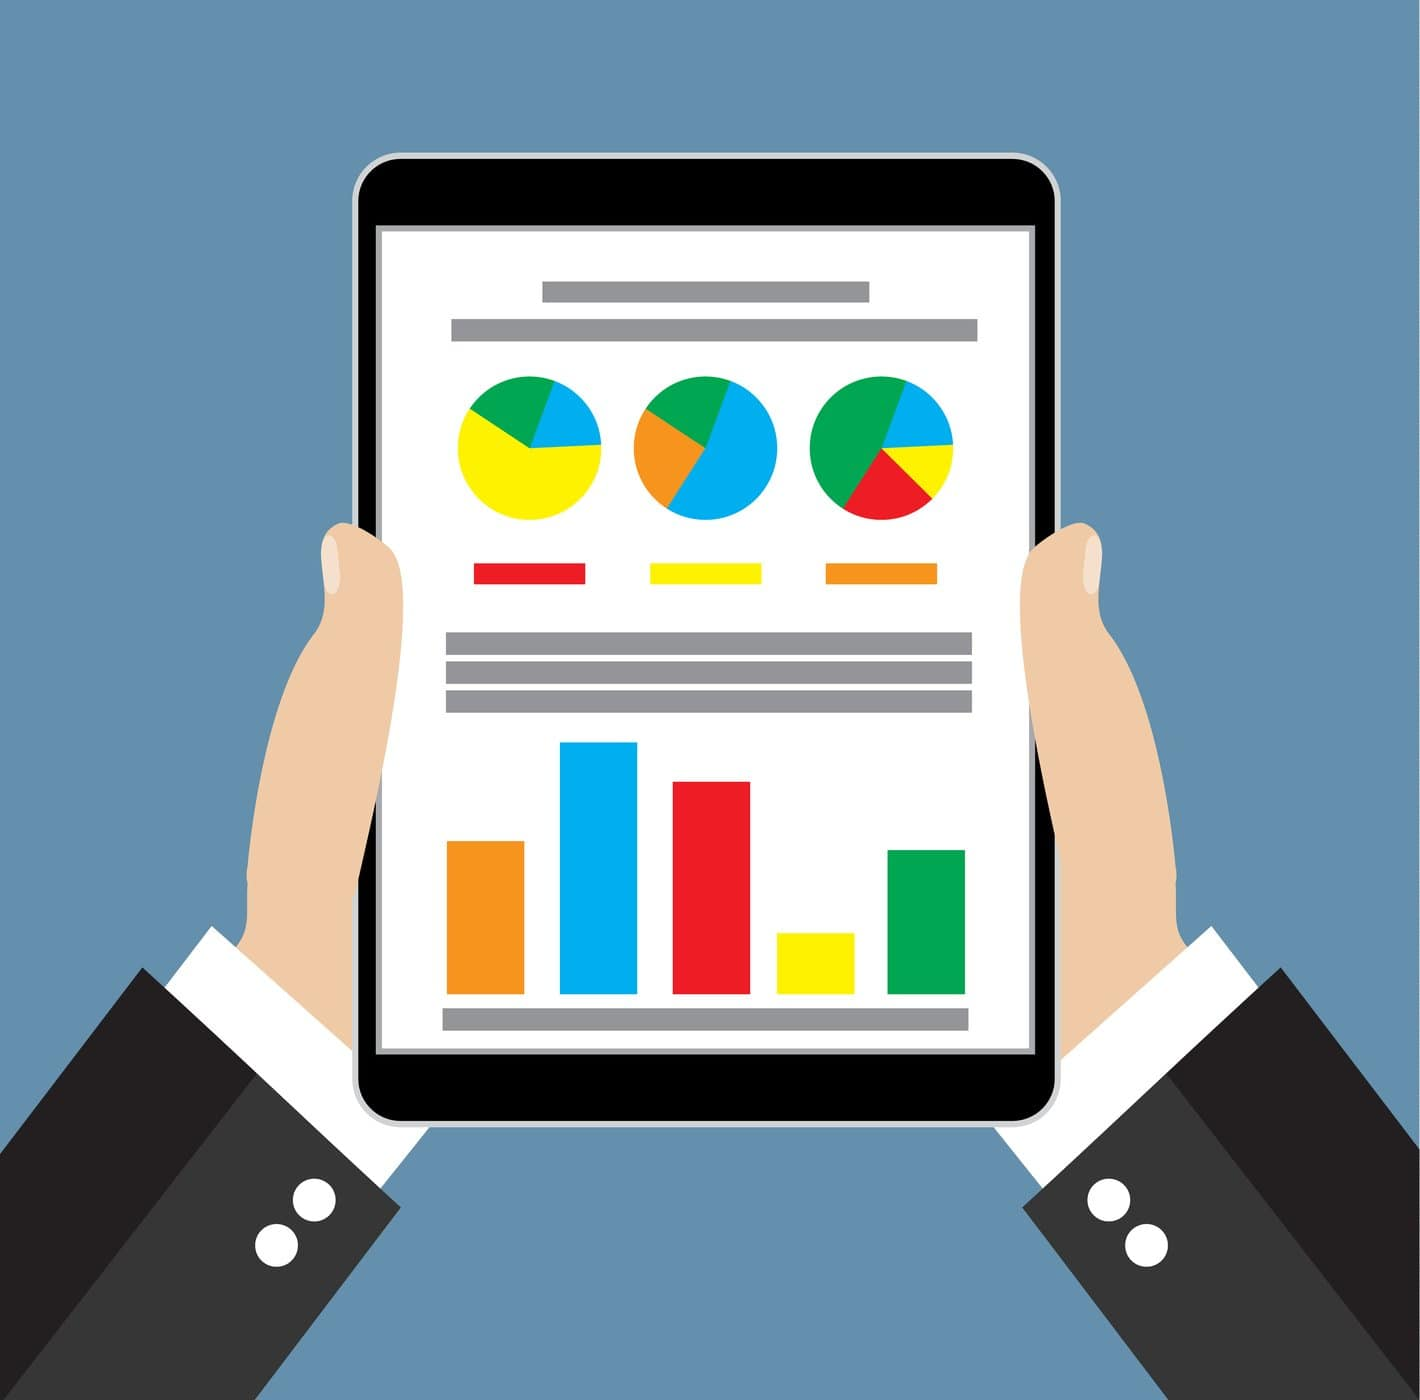 3 Rules for the Content of Your HR Dashboard